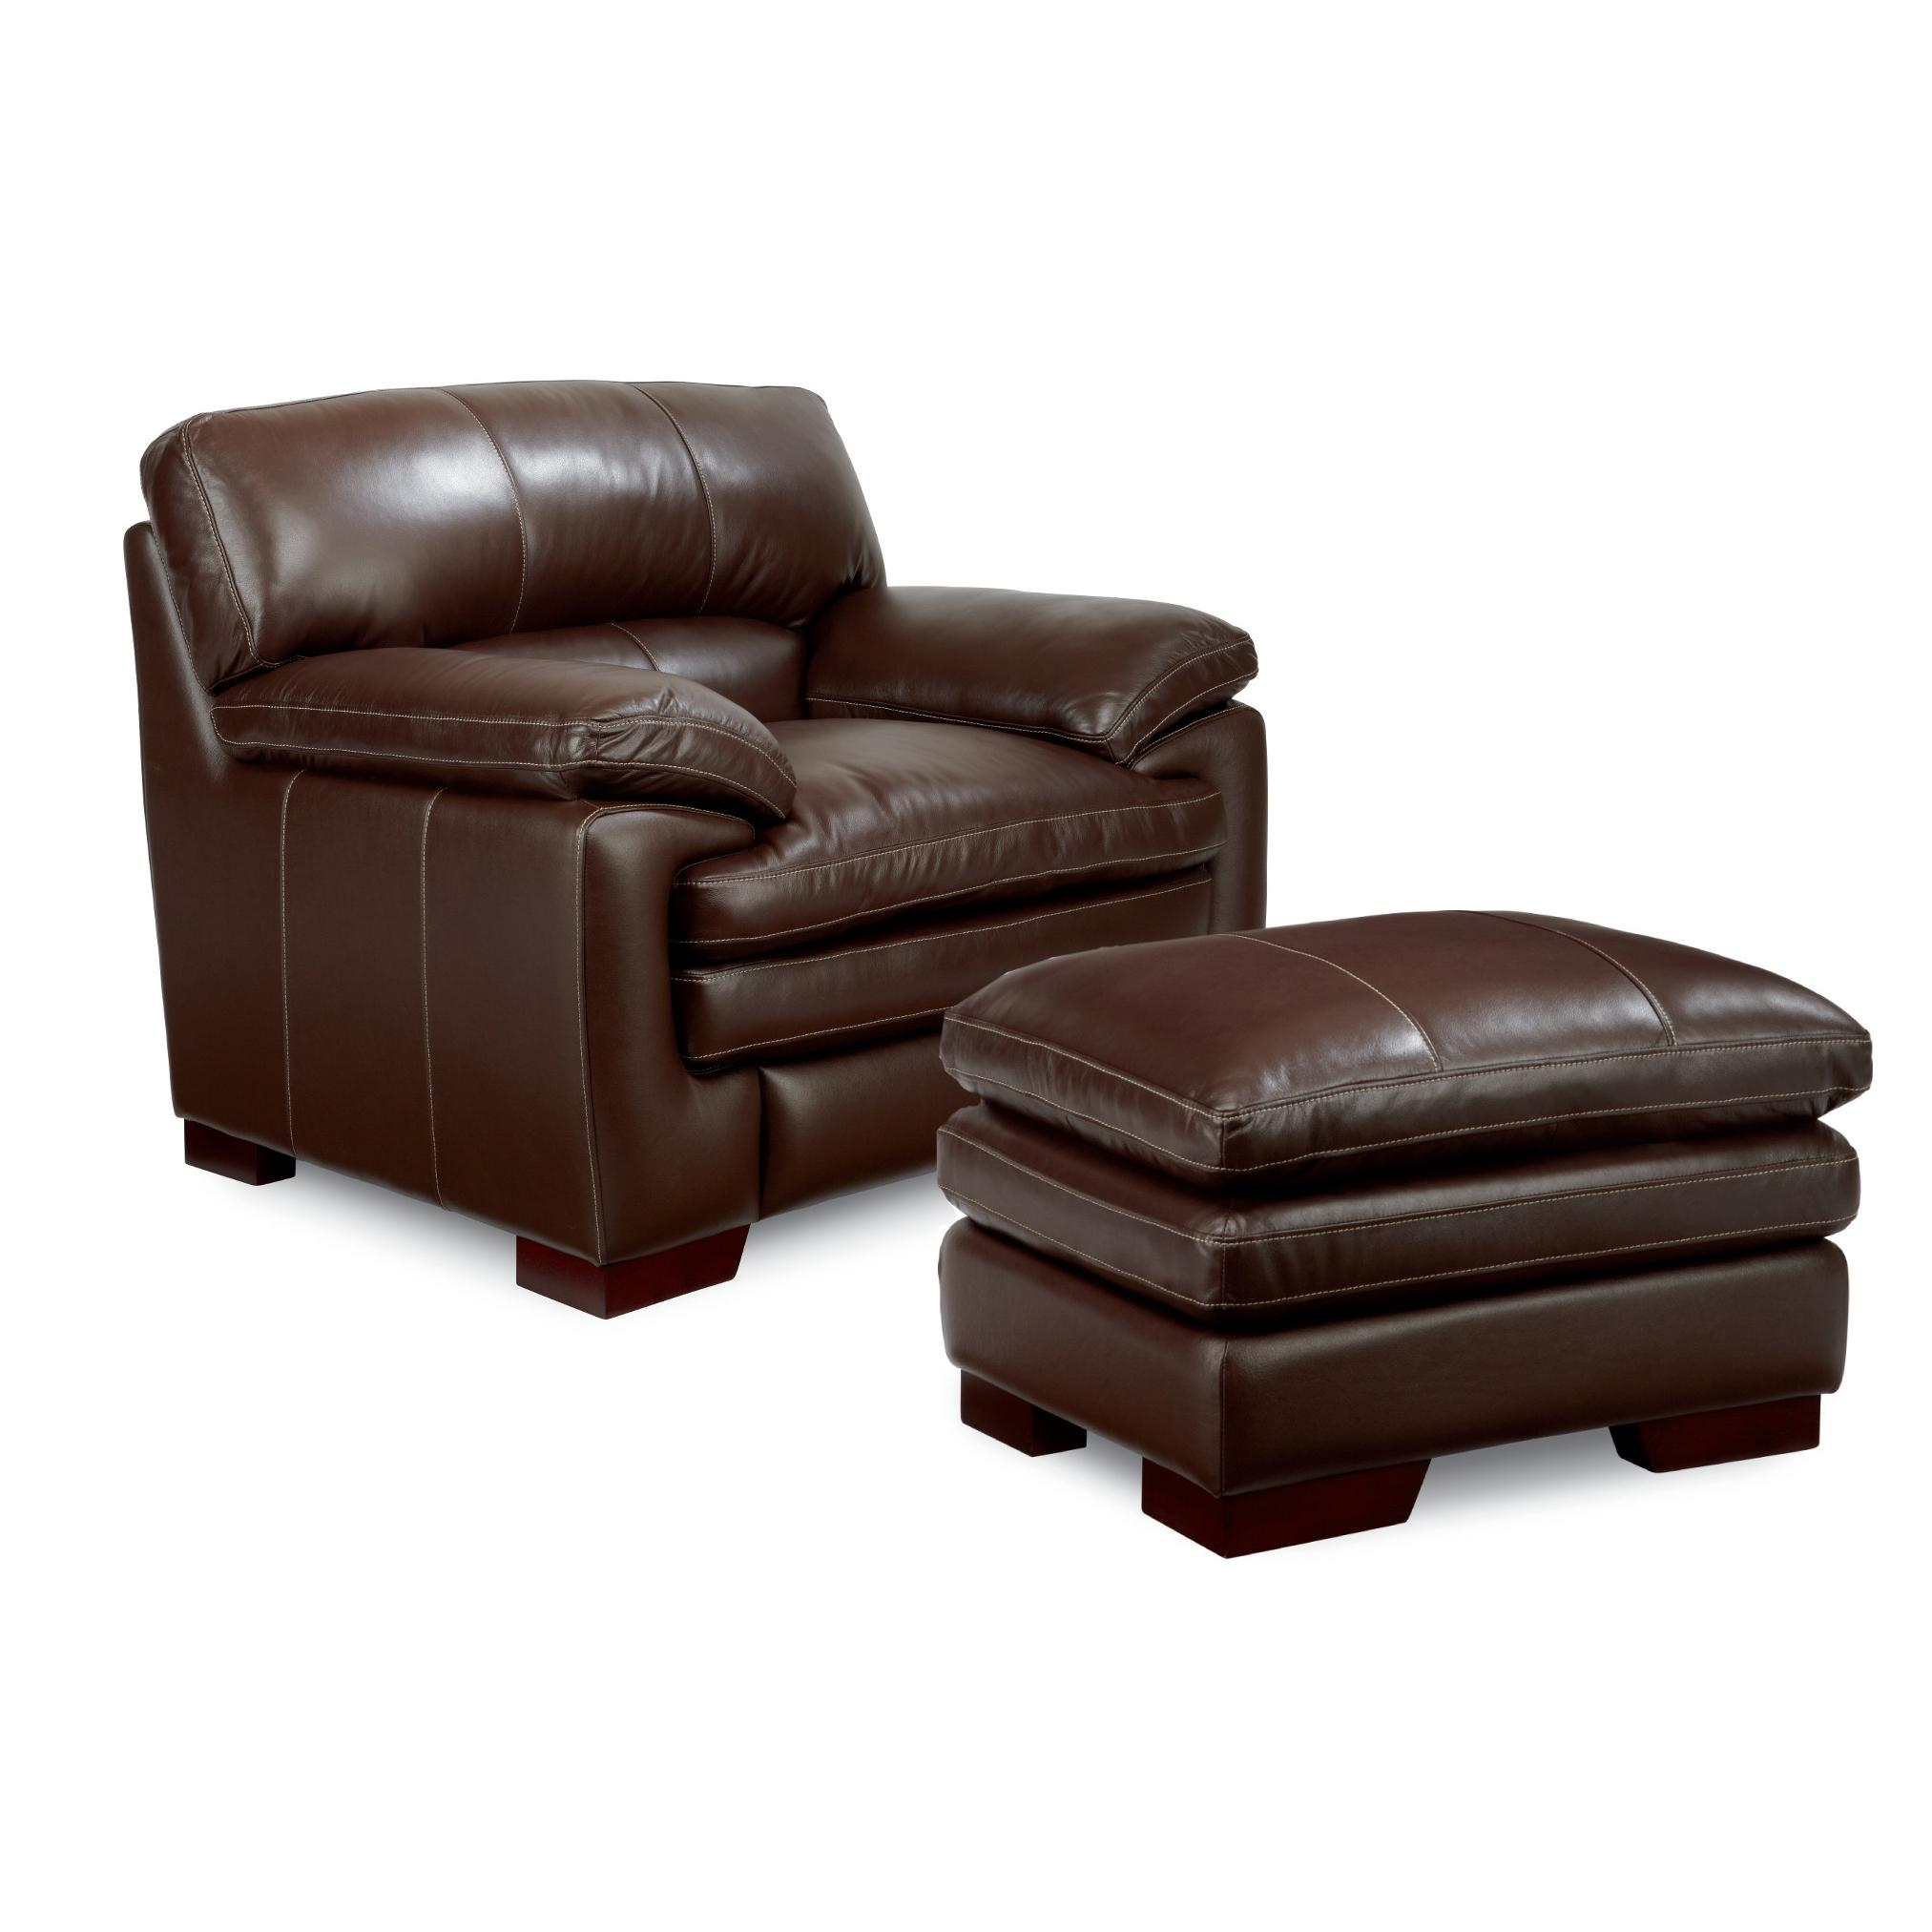 Casual Upholstered Stationary Chair And Ottoman Set